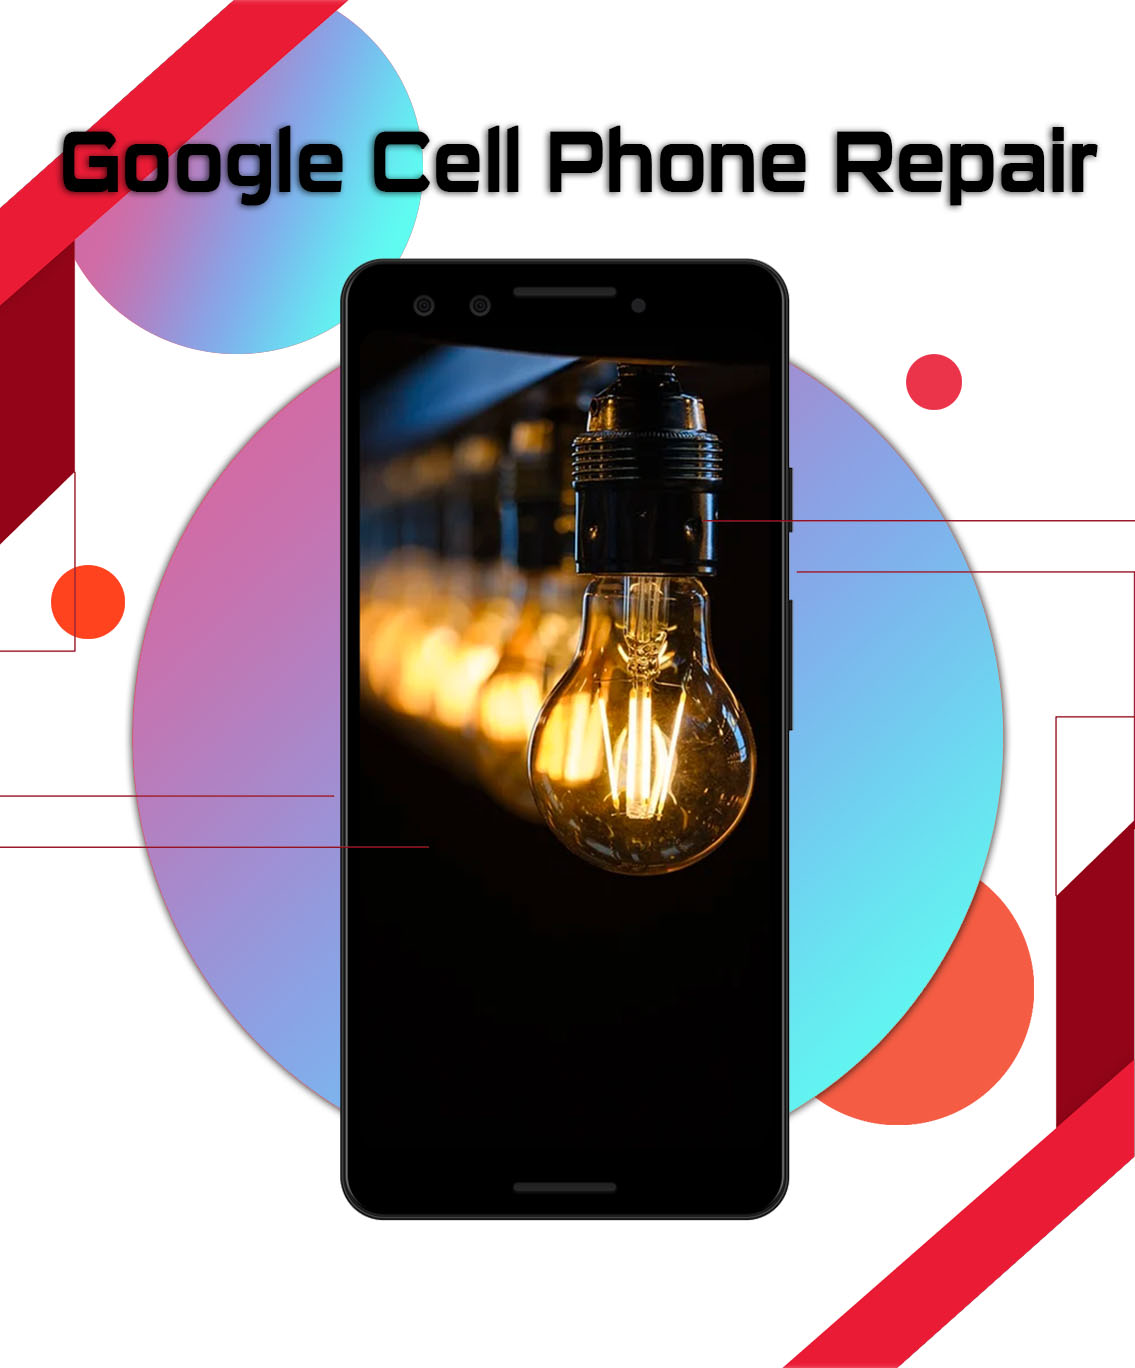 Google Cell Phone Repair in Vancouver